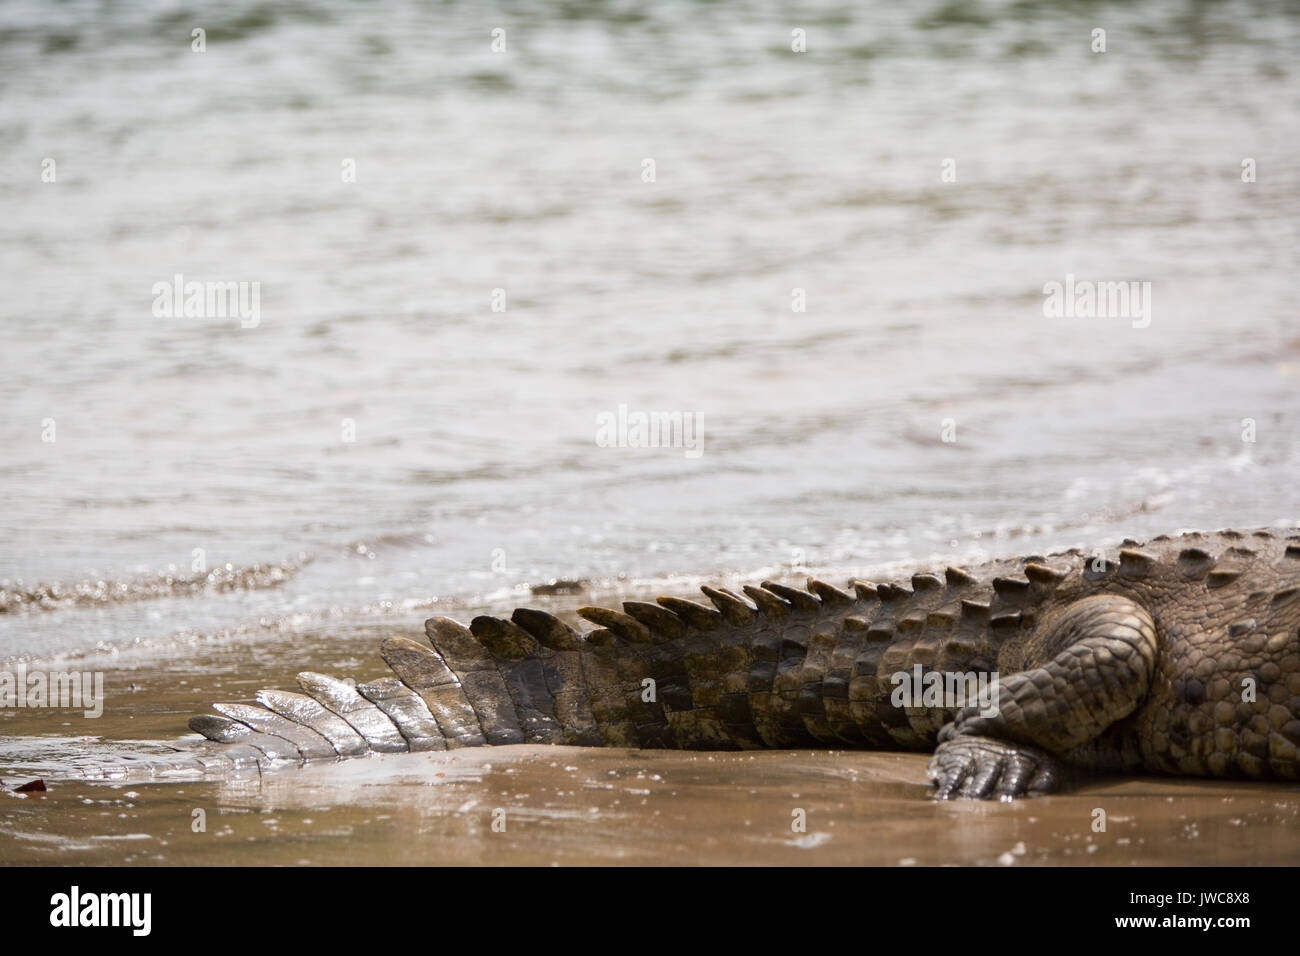 In Isla Coiba National Park,the details of an american crocodile's tough,scaly skin and tail are visible resting Stock Photo